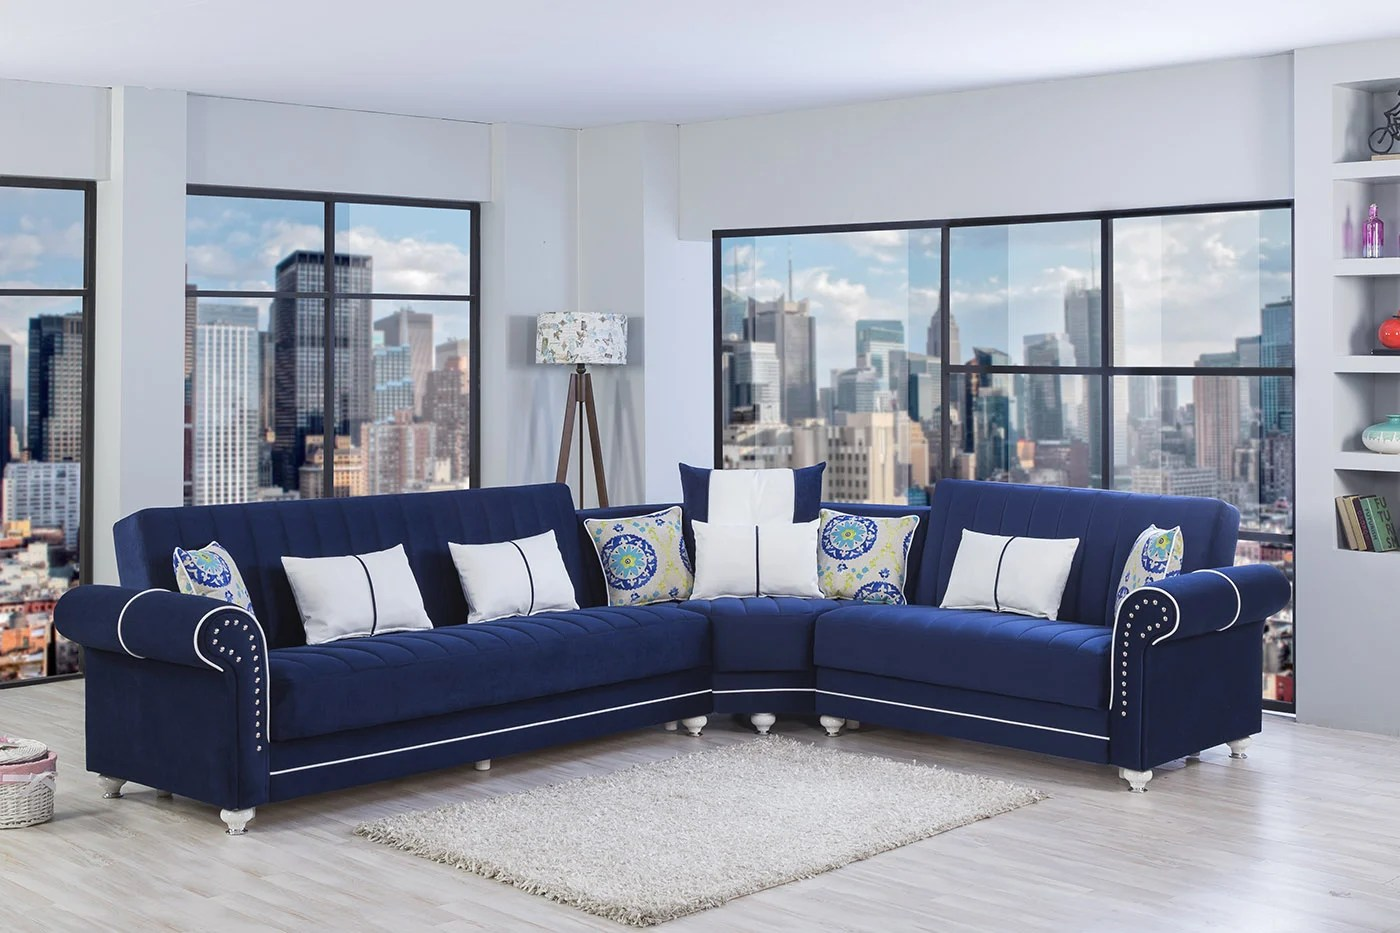 Blue Sectional Royal Home Riva Dark Blue Convertible Sectional By Casamode